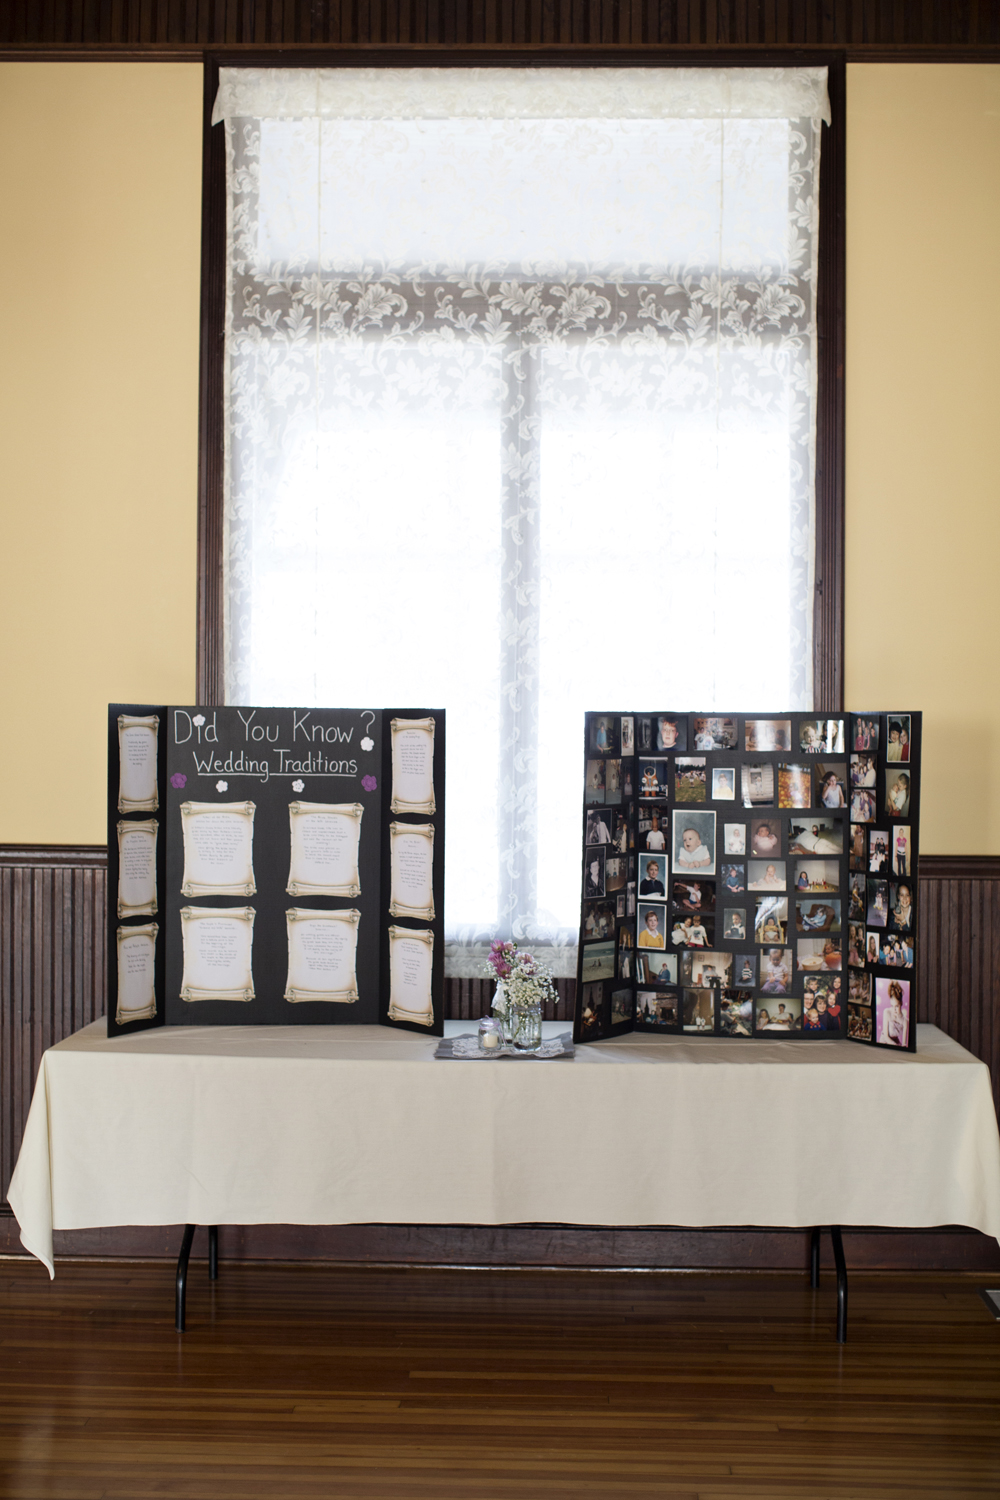 Personal details and pictures at an indoor wedding